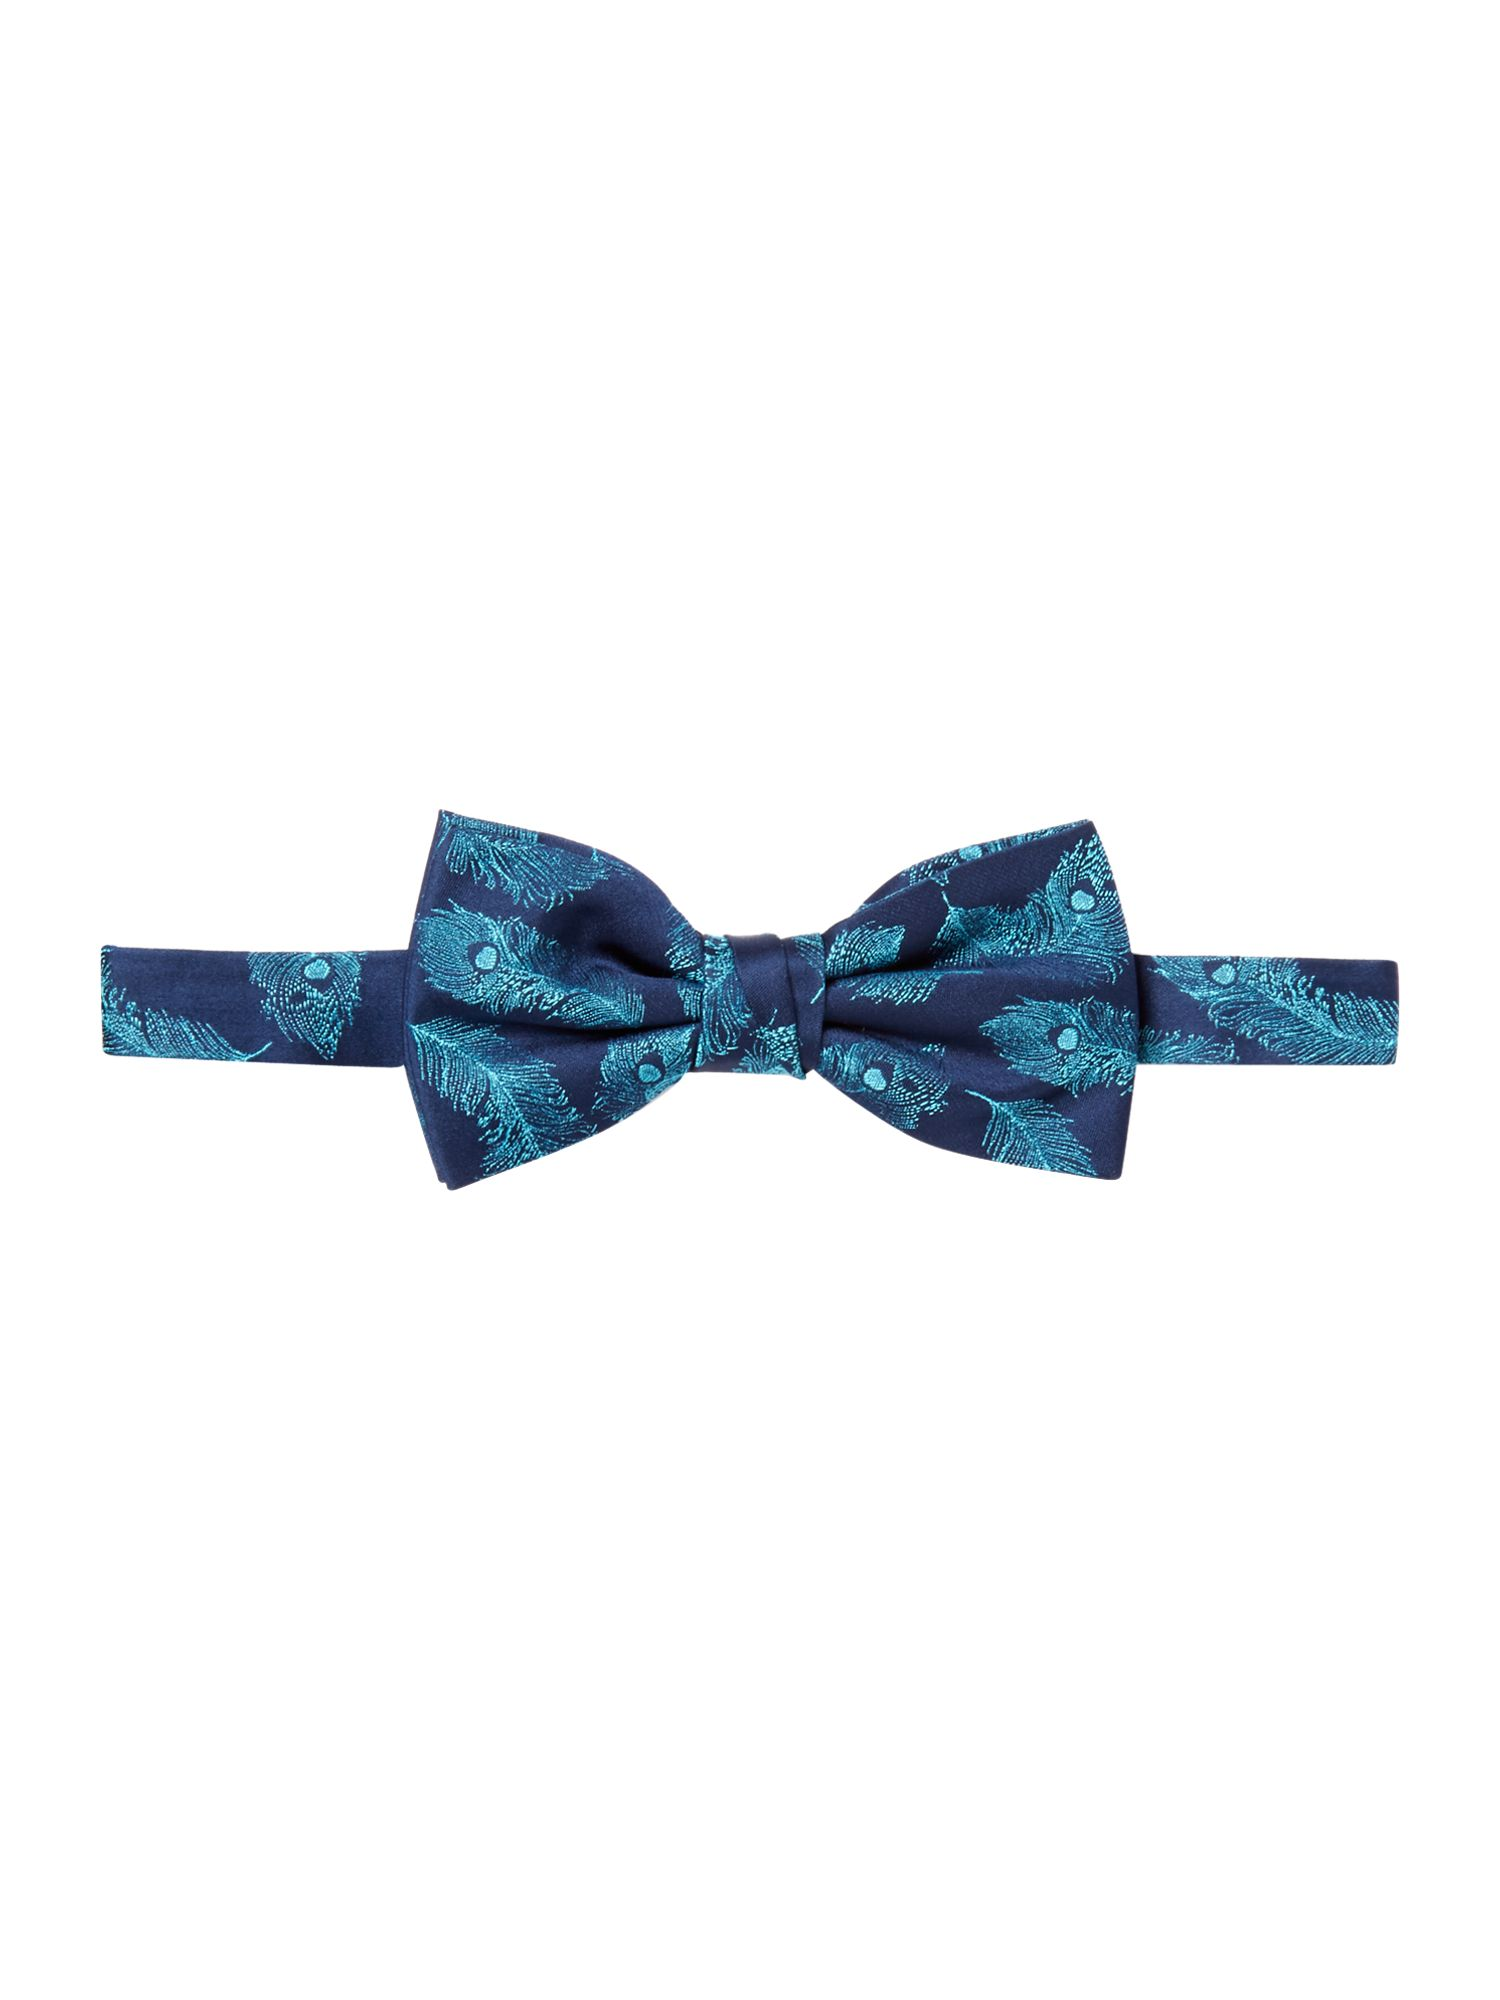 Cromer Peacock Feather Silk Bow Tie